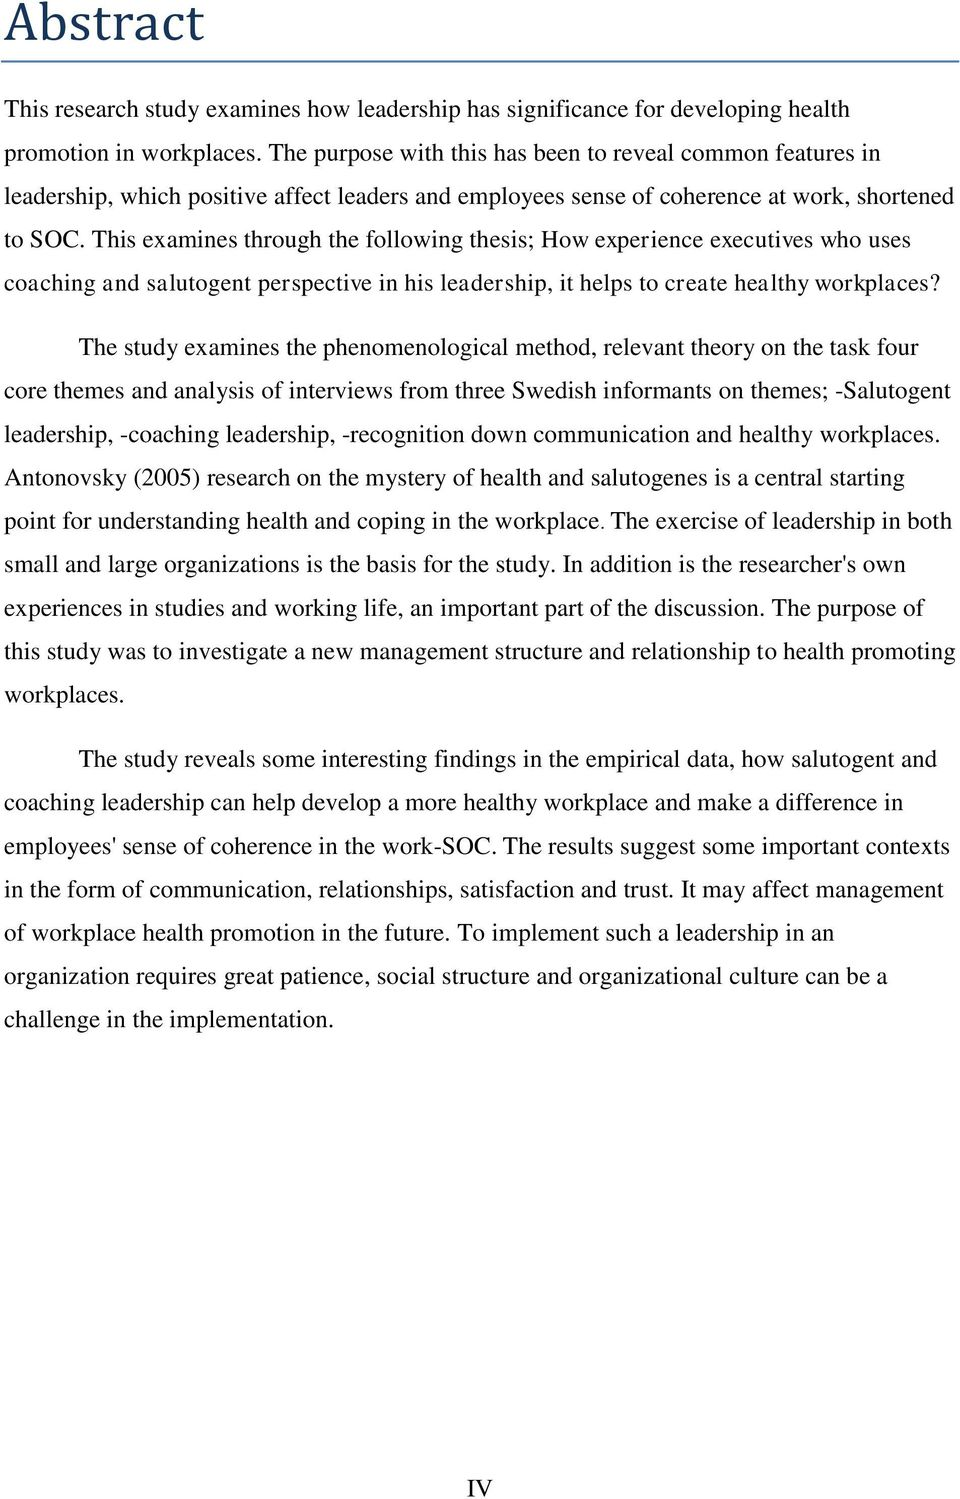 This examines through the following thesis; How experience executives who uses coaching and salutogent perspective in his leadership, it helps to create healthy workplaces?